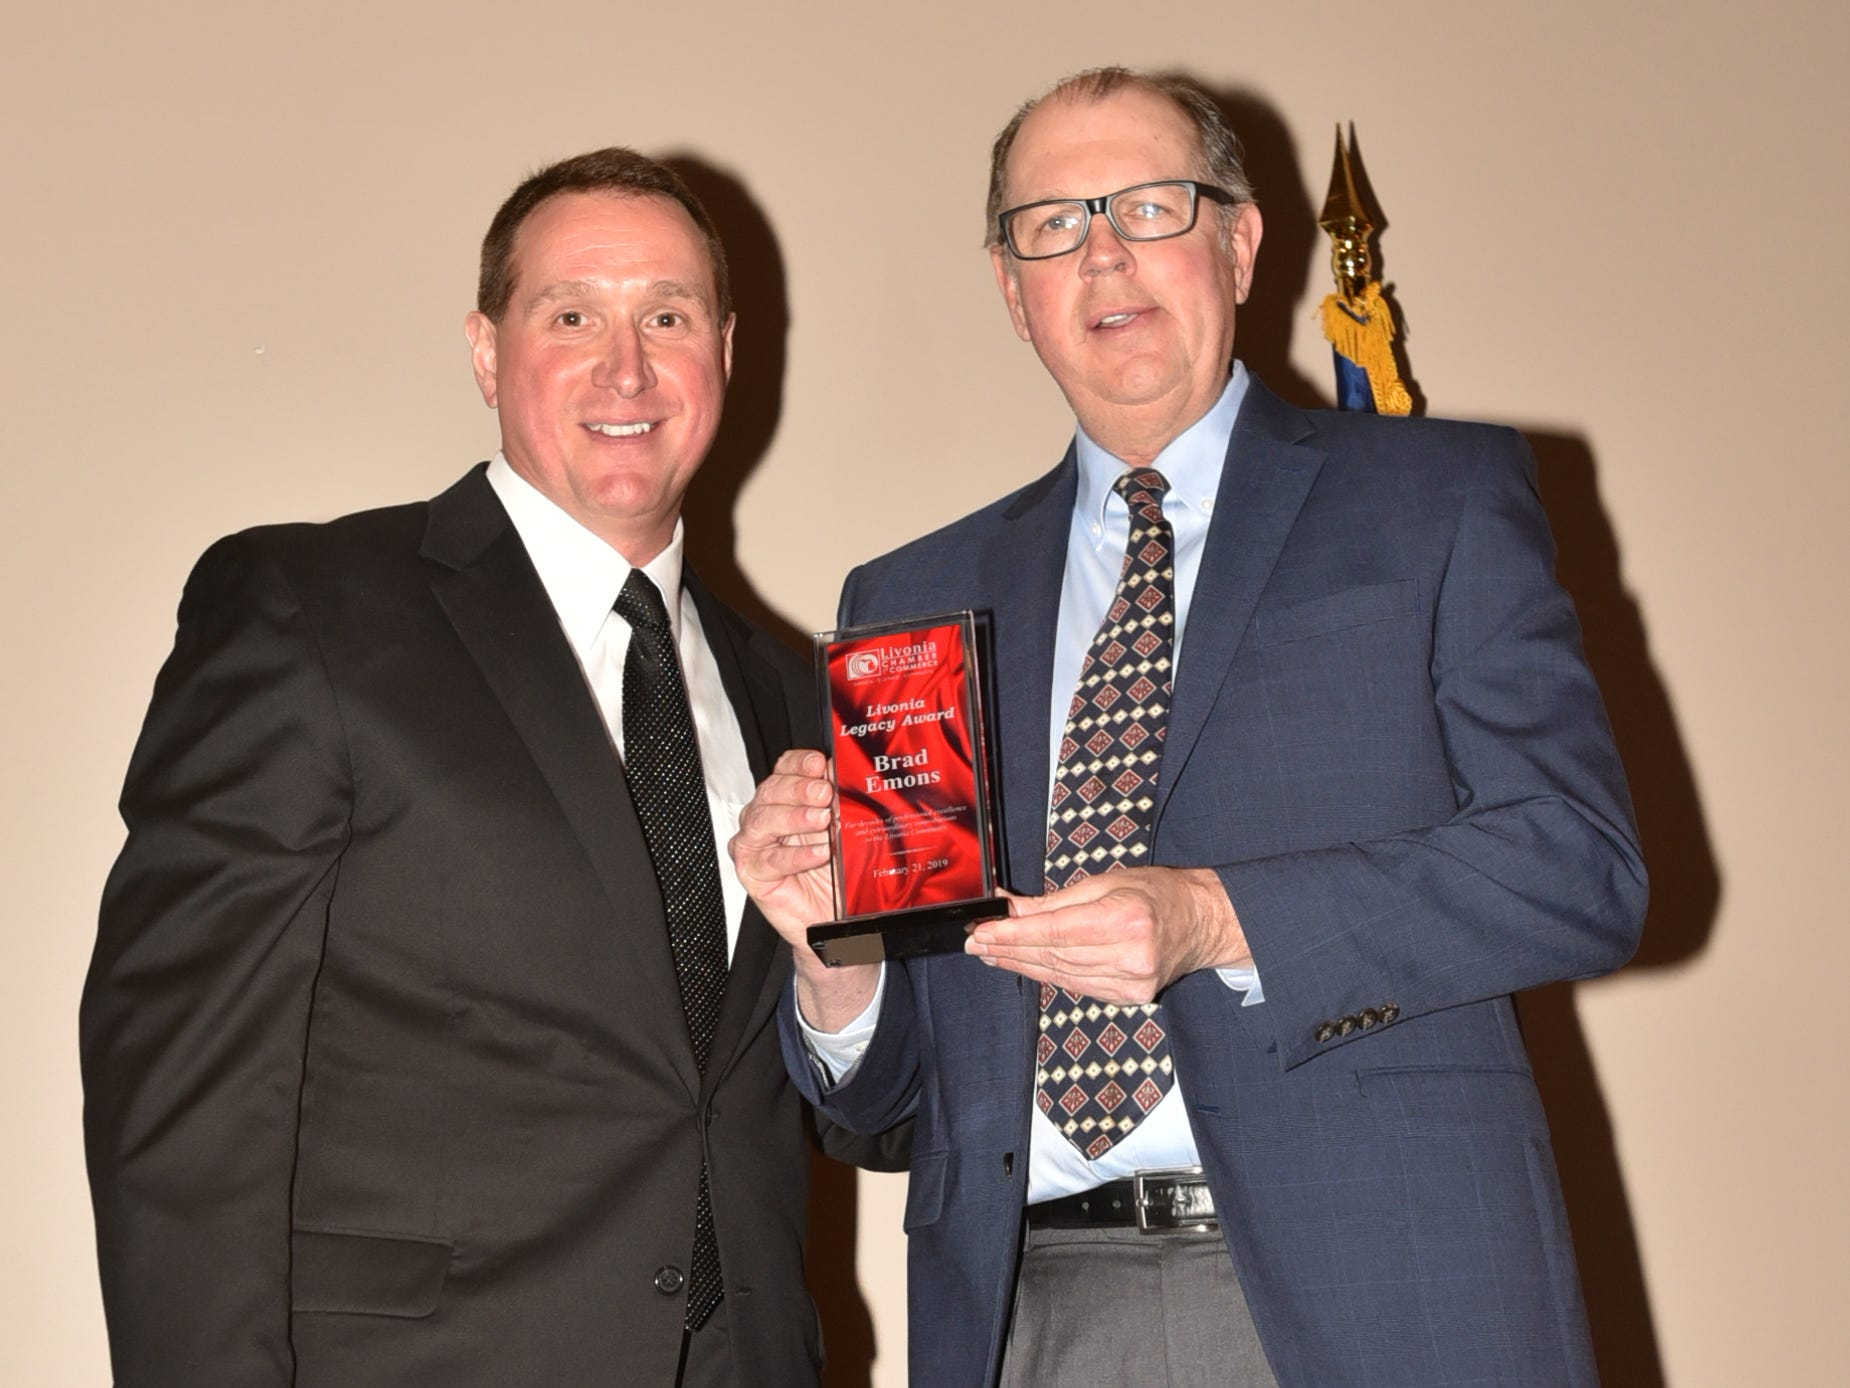 Recently-retired O&E sports reporter Brad Emons, right, is honored by the Livonia Chamber for its Livonia Legacy Award. Emons wrote for the newspapers and hometownlife.com for 41 years and retired in early February. Livonia Chamber of Commerce's Dan West is at left.